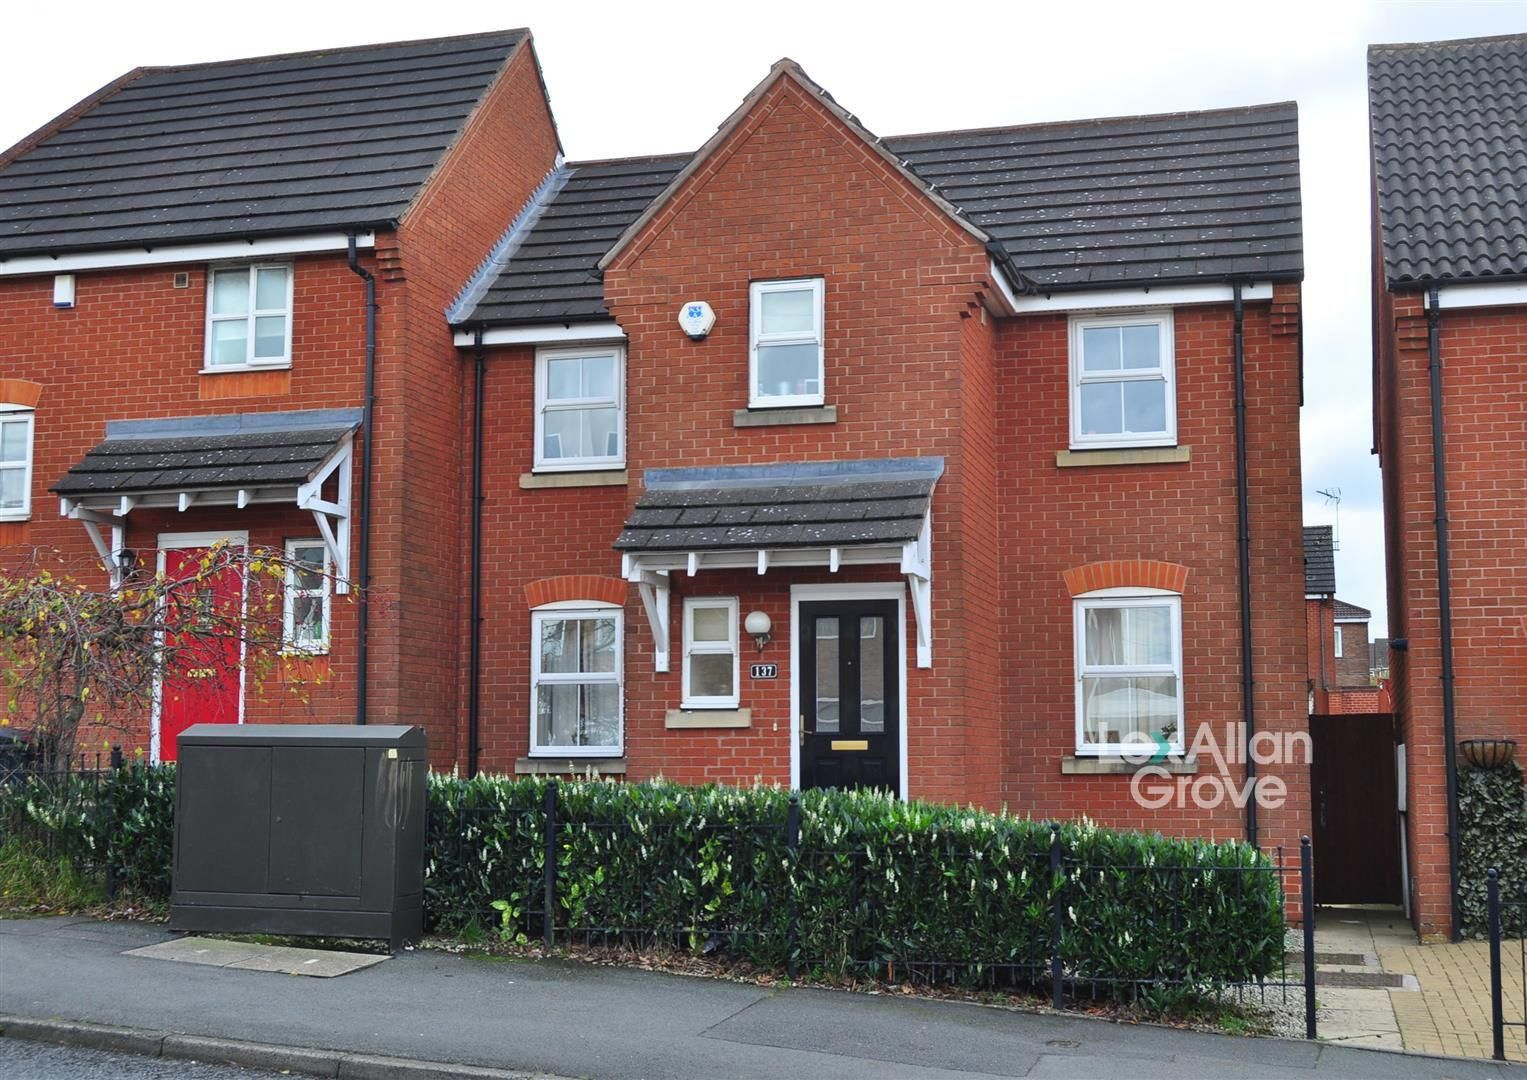 3 bed end-of-terrace for sale 1